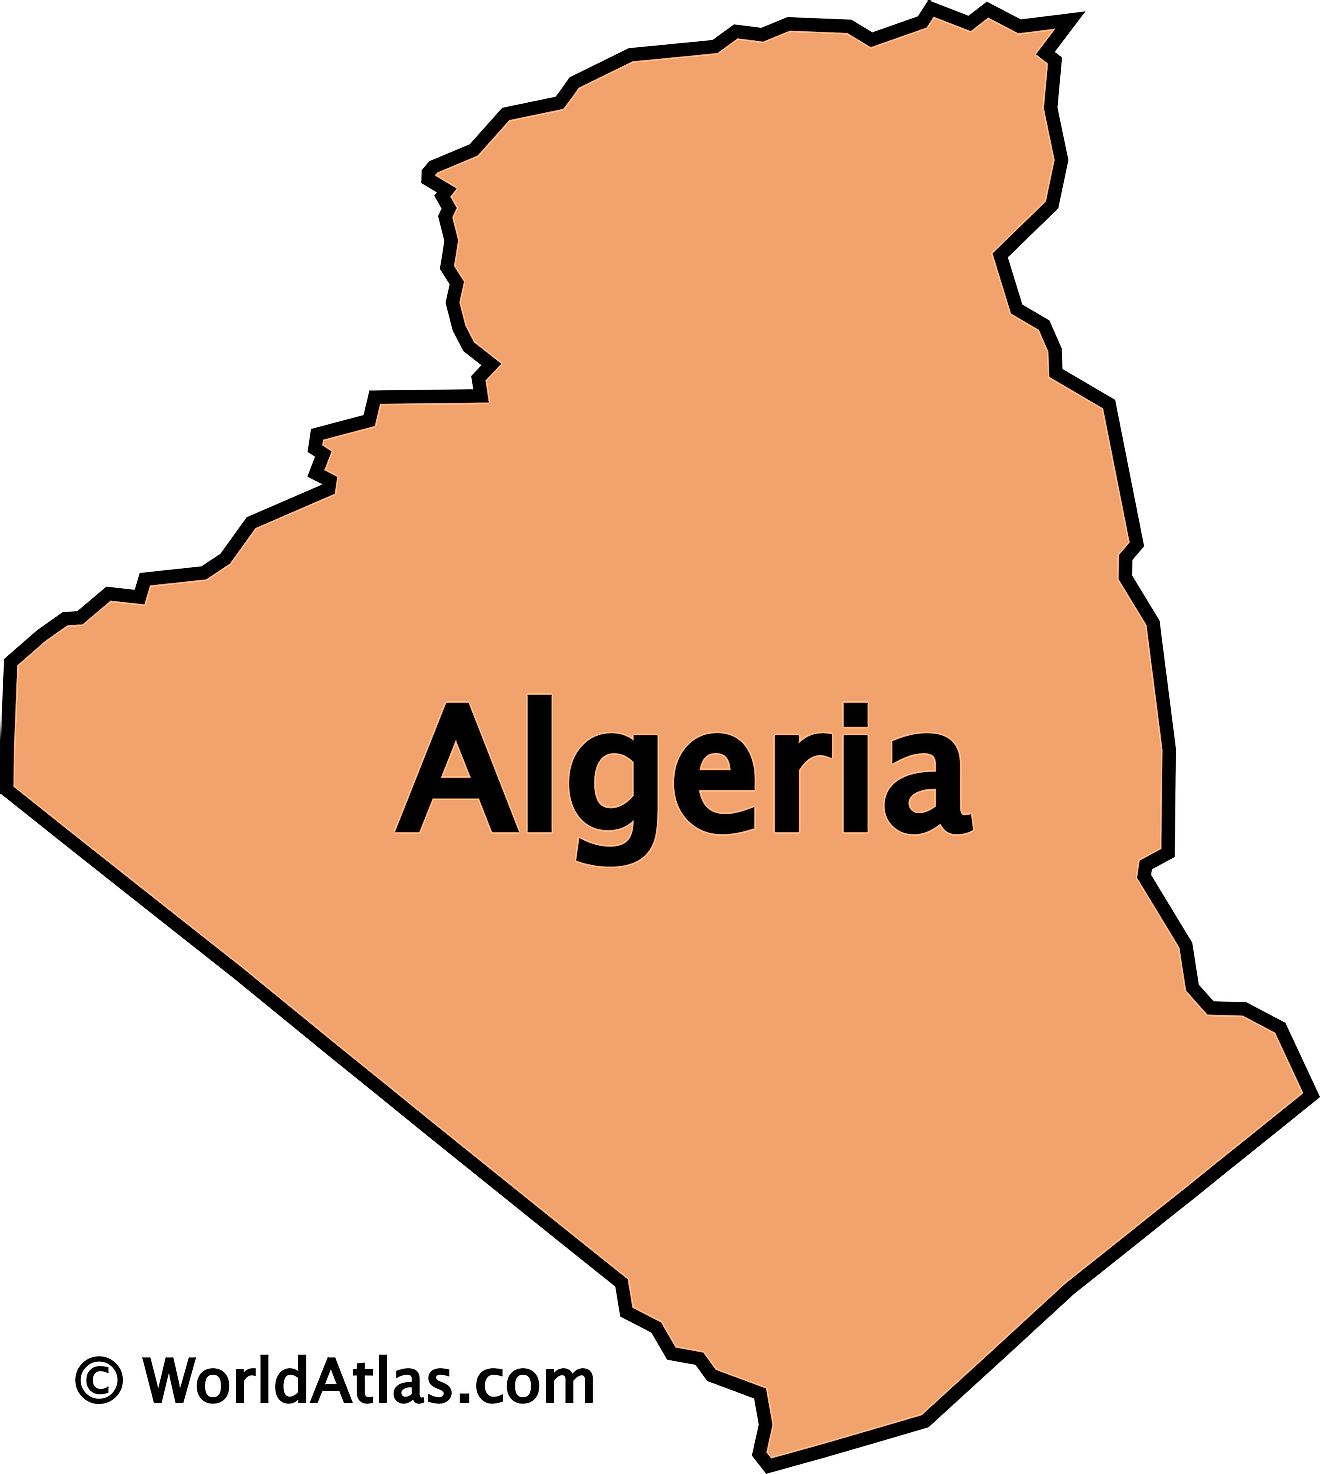 Outline map of Algeria